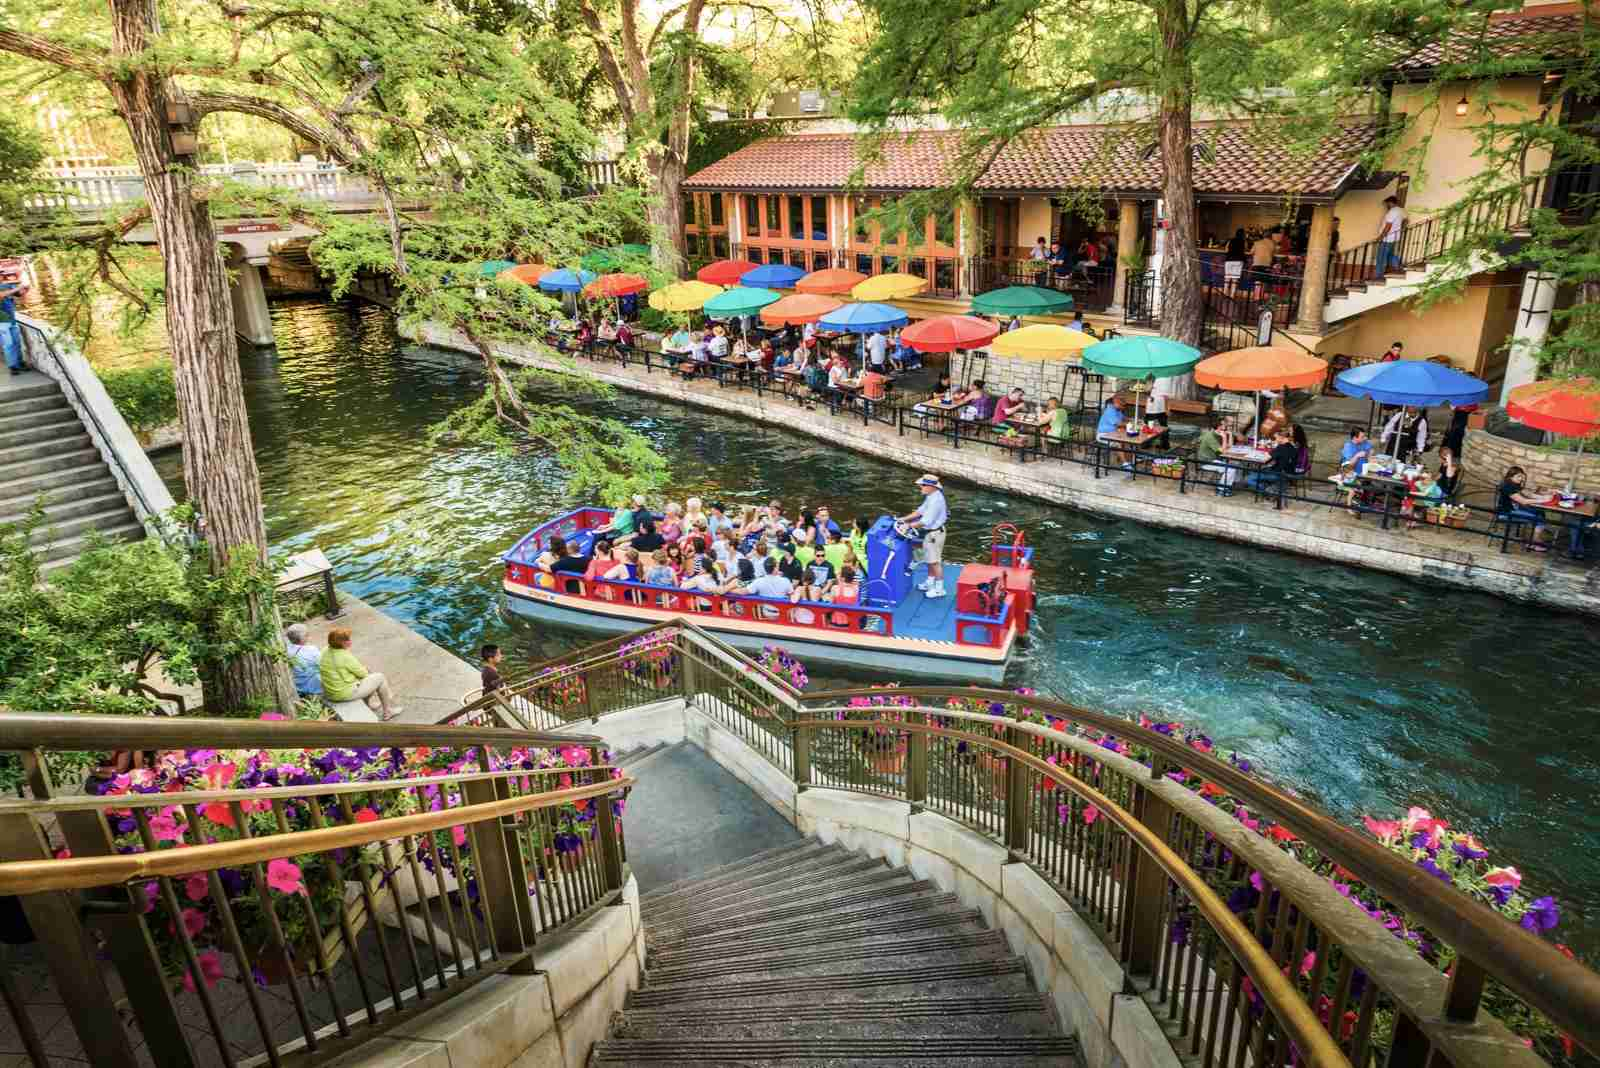 The San Antonio River Walk and the scenic canal tours via boat.(Photo by dszc / Getty Images)